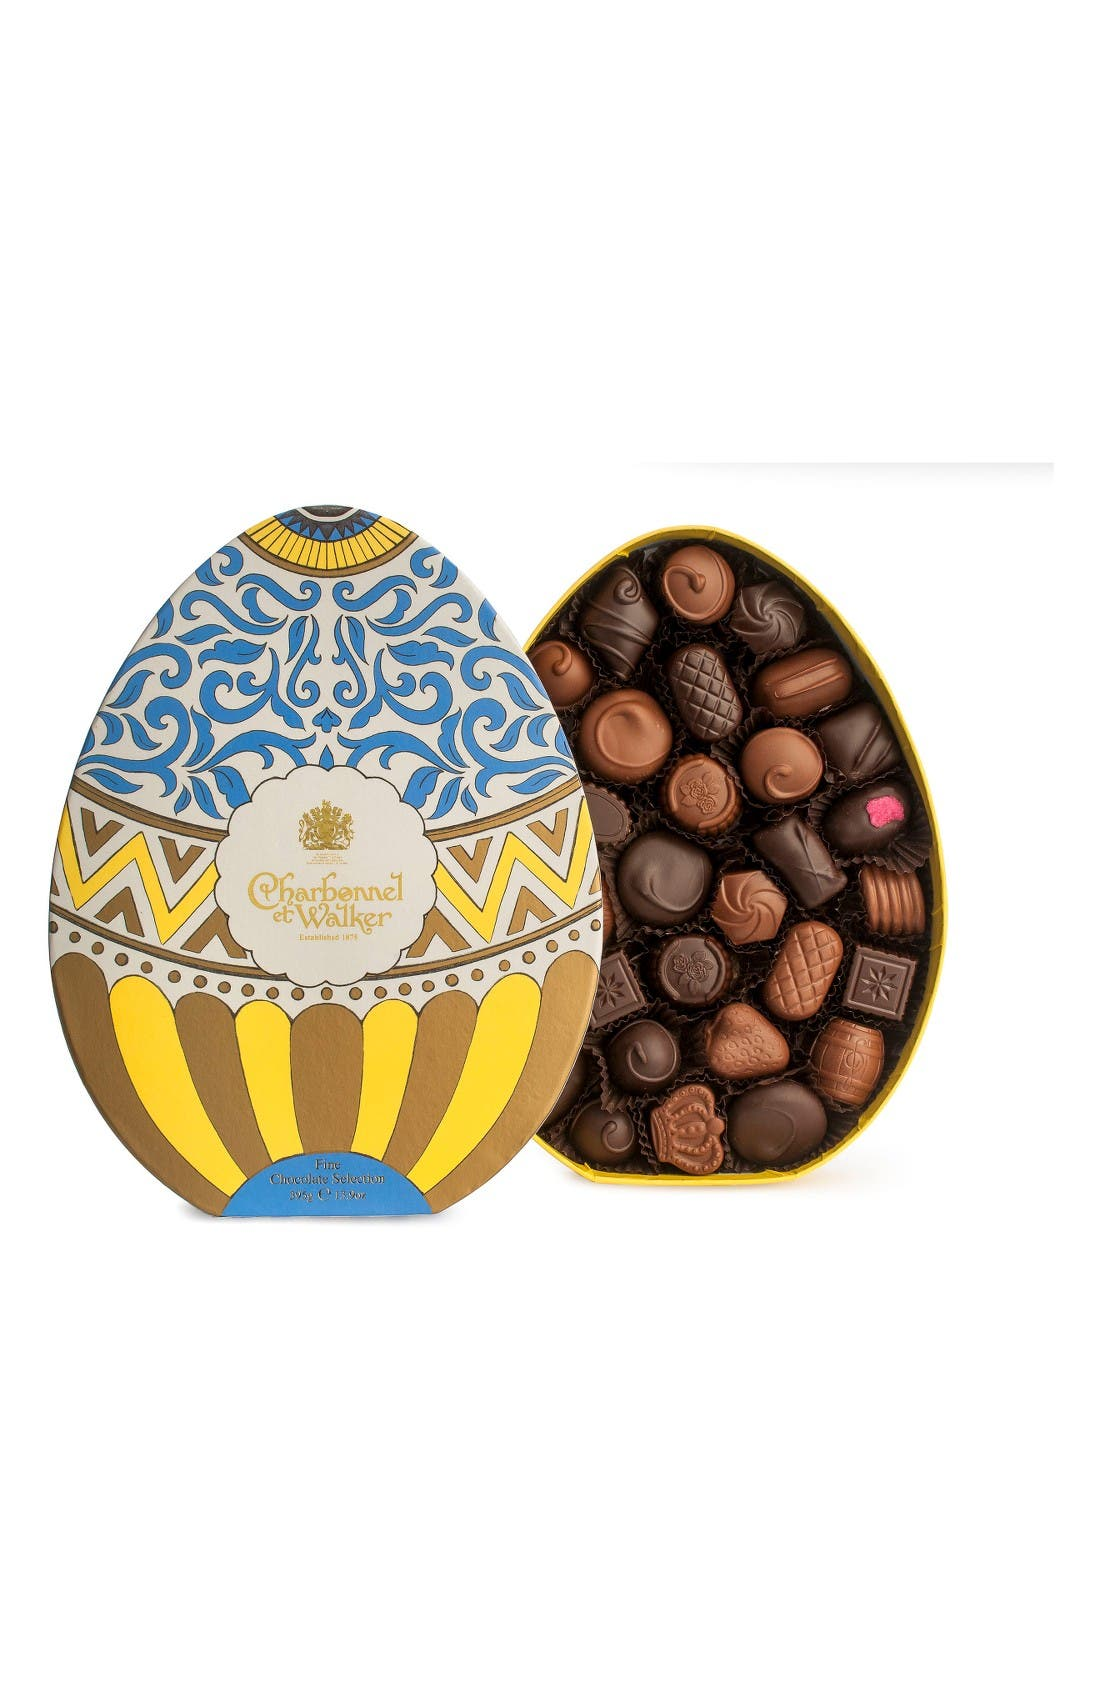 Alternate Image 1 Selected - Charbonnel et Walker Fine Assorted Chocolates in Egg Shaped Gift Box